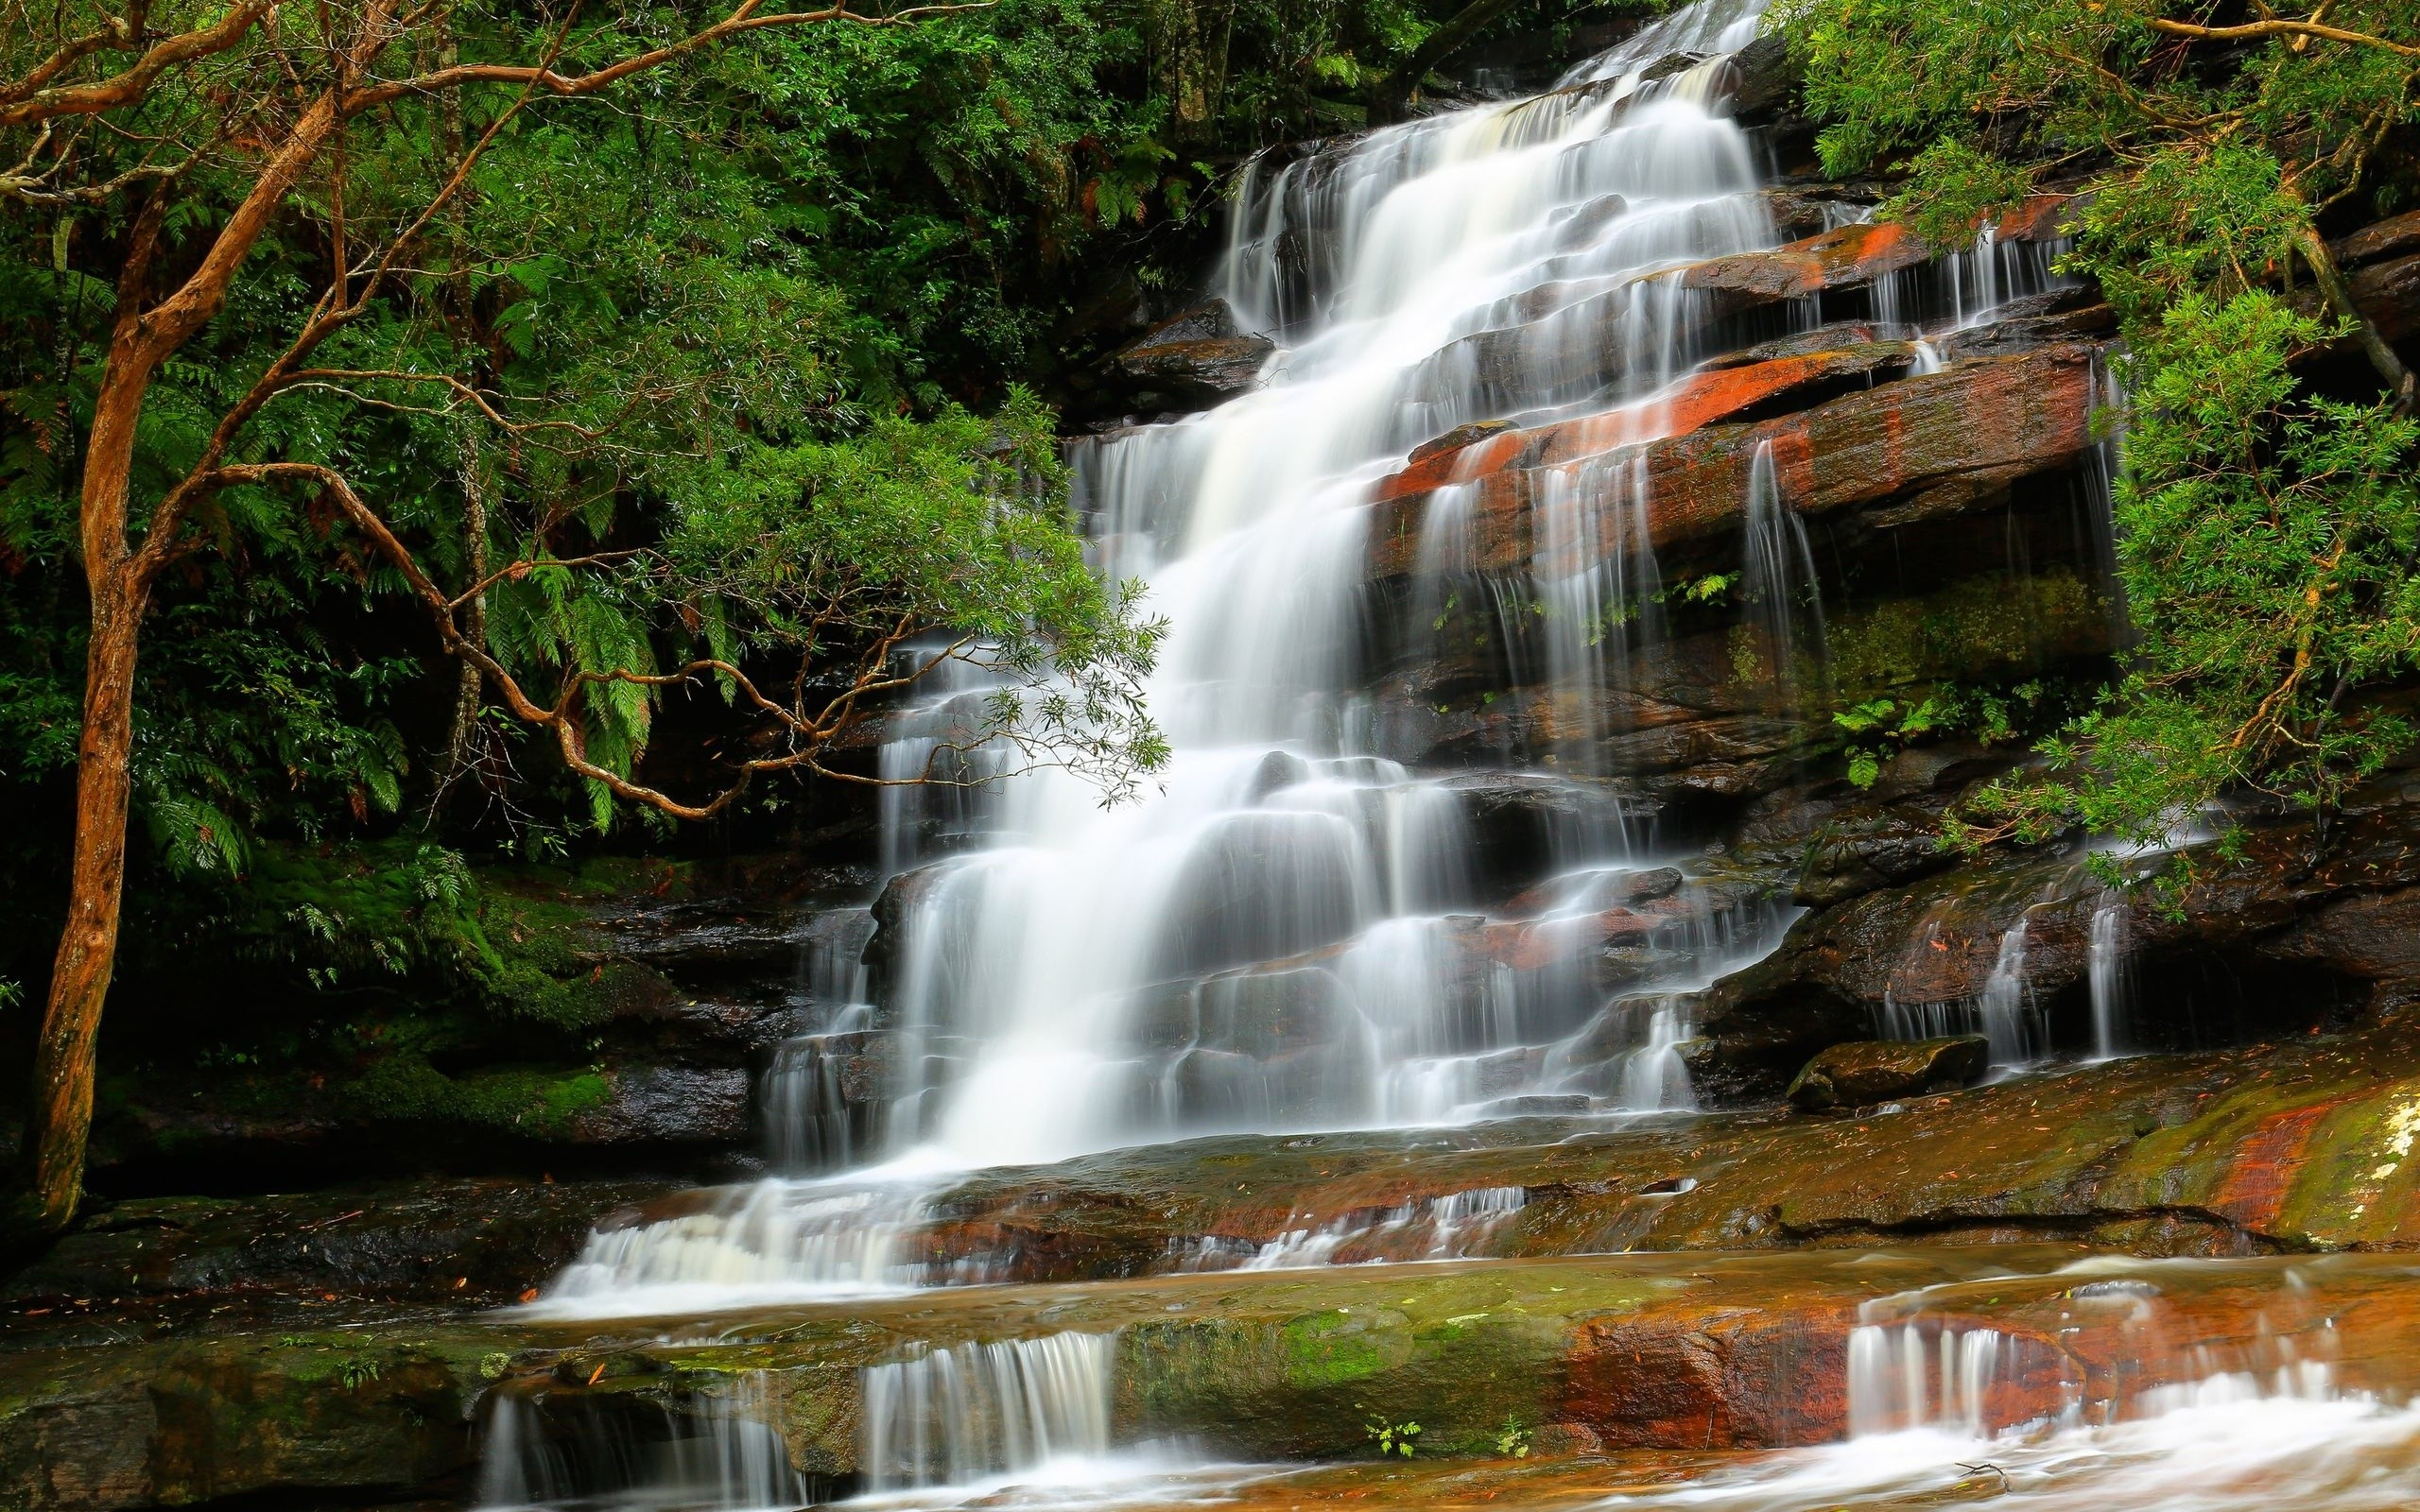 #Cool #WaterFall #Windows8 #Wallpaper ~ Somersby Falls #background